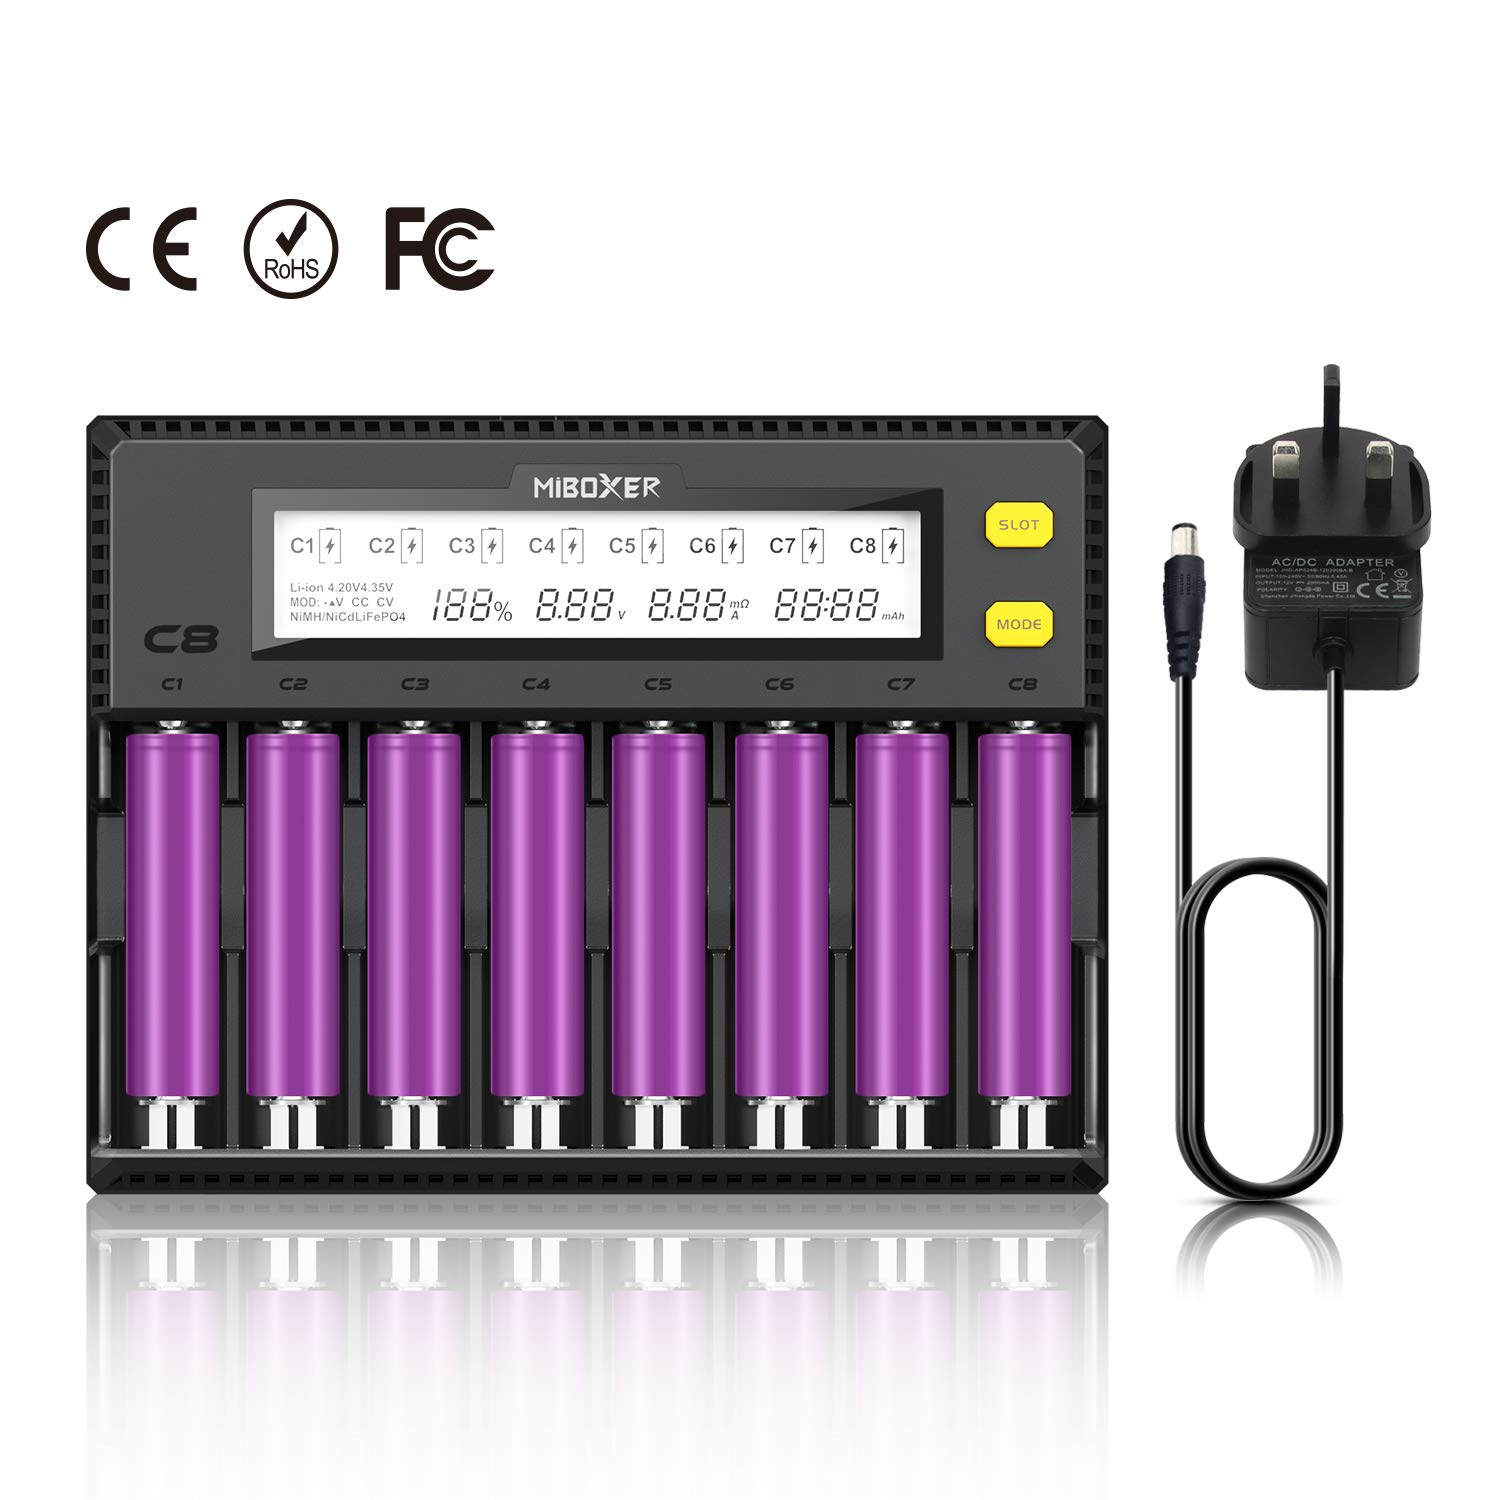 18650 Battery Charger 8 Slot UK Miboxer C8 8 bay Fast Charger for Rechargeable Batteries Lithium ion NiMH NiCd AA AAA AAAA C Cell 26650 21700 18490 RCR123 IMR